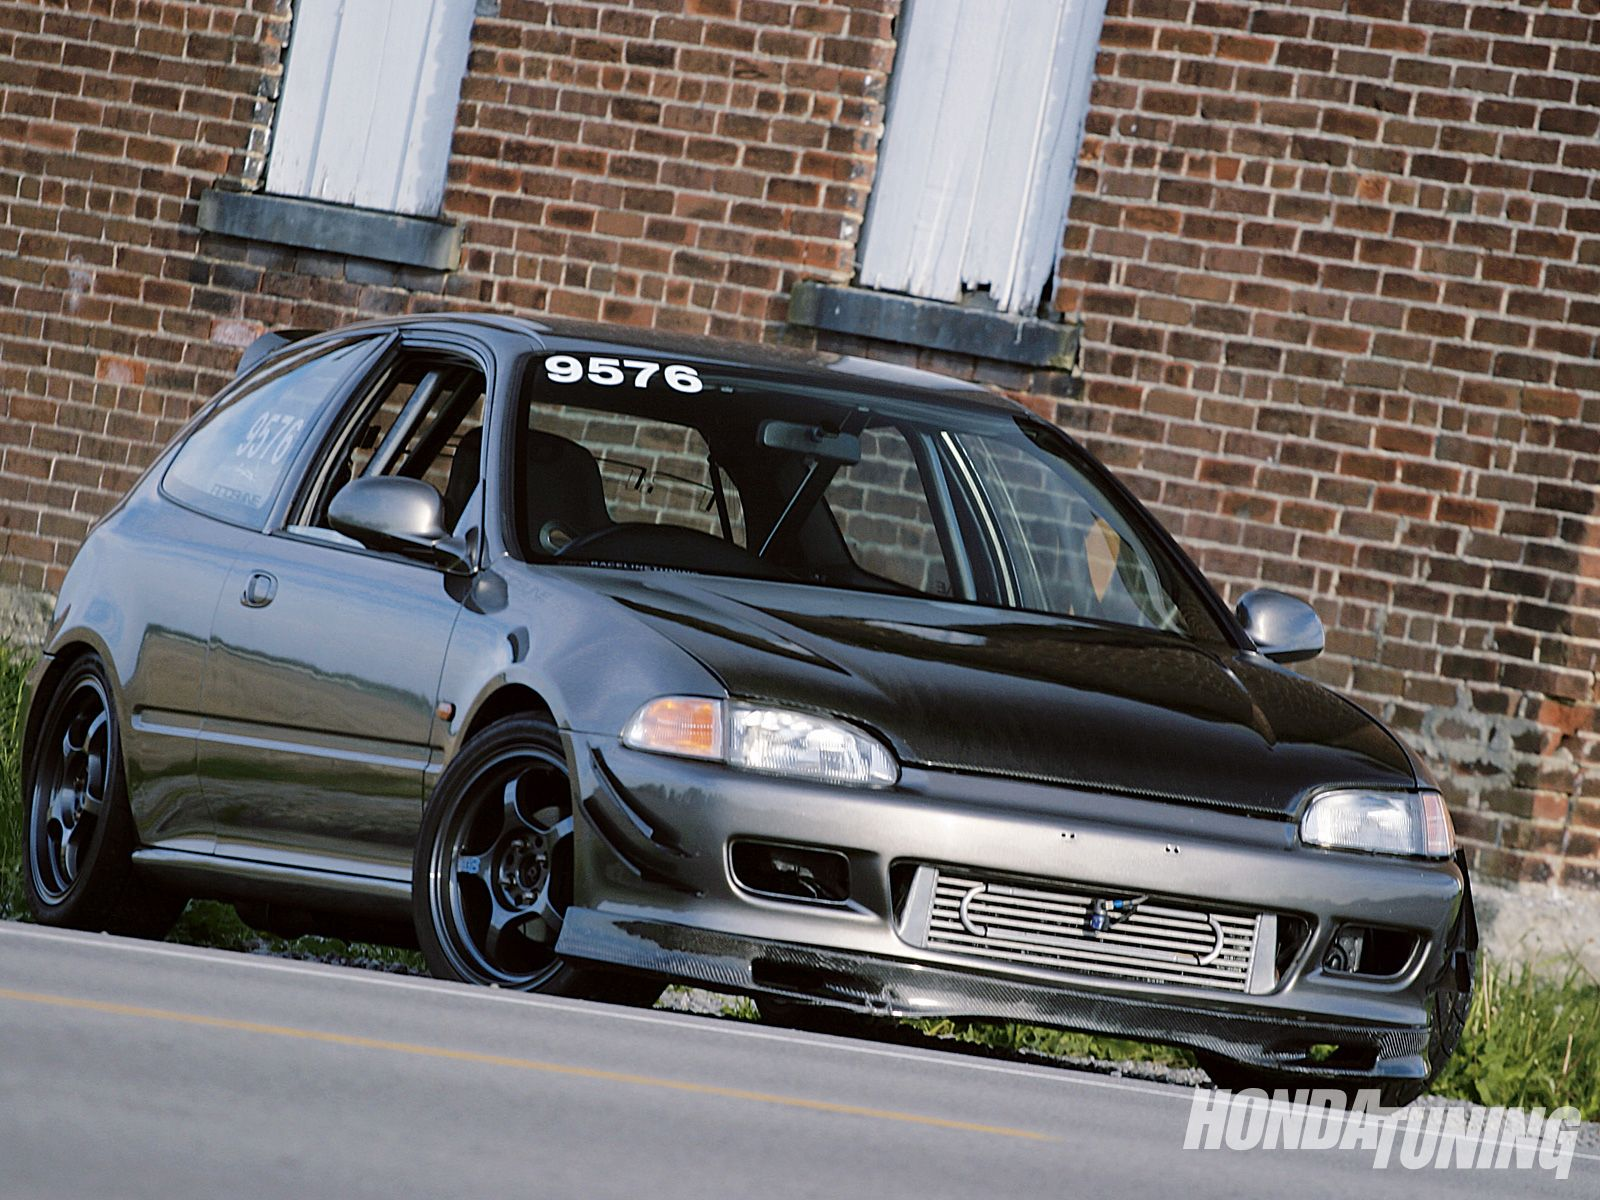 Honda Civic 1992 #6